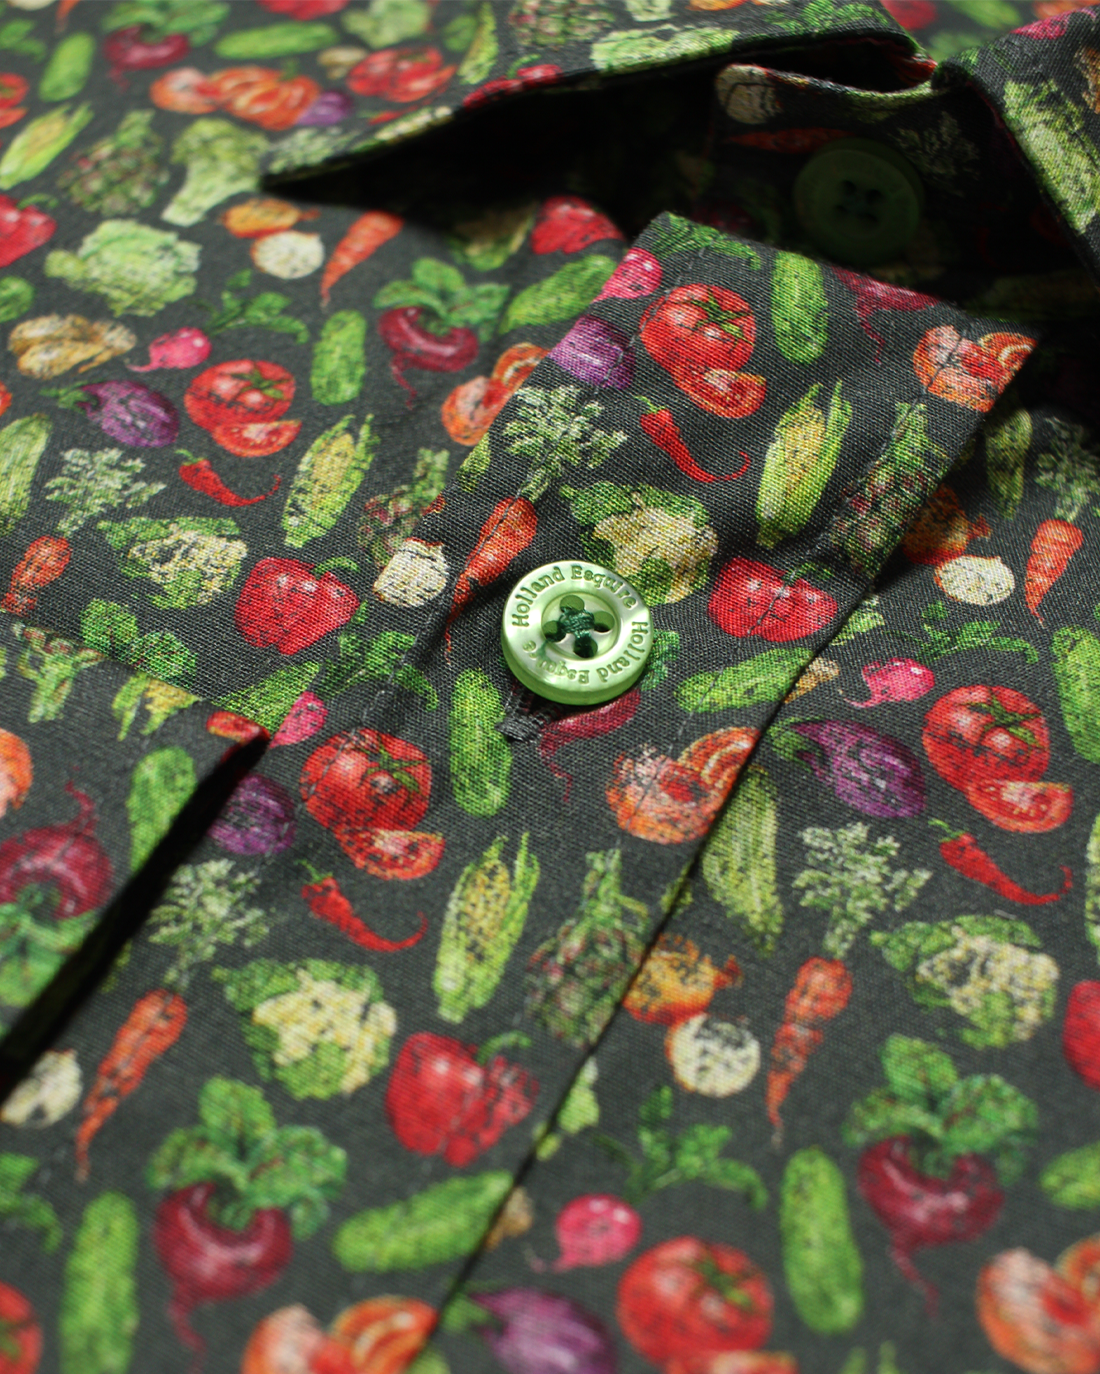 Vintage Veg Shirt - Holland Esquire